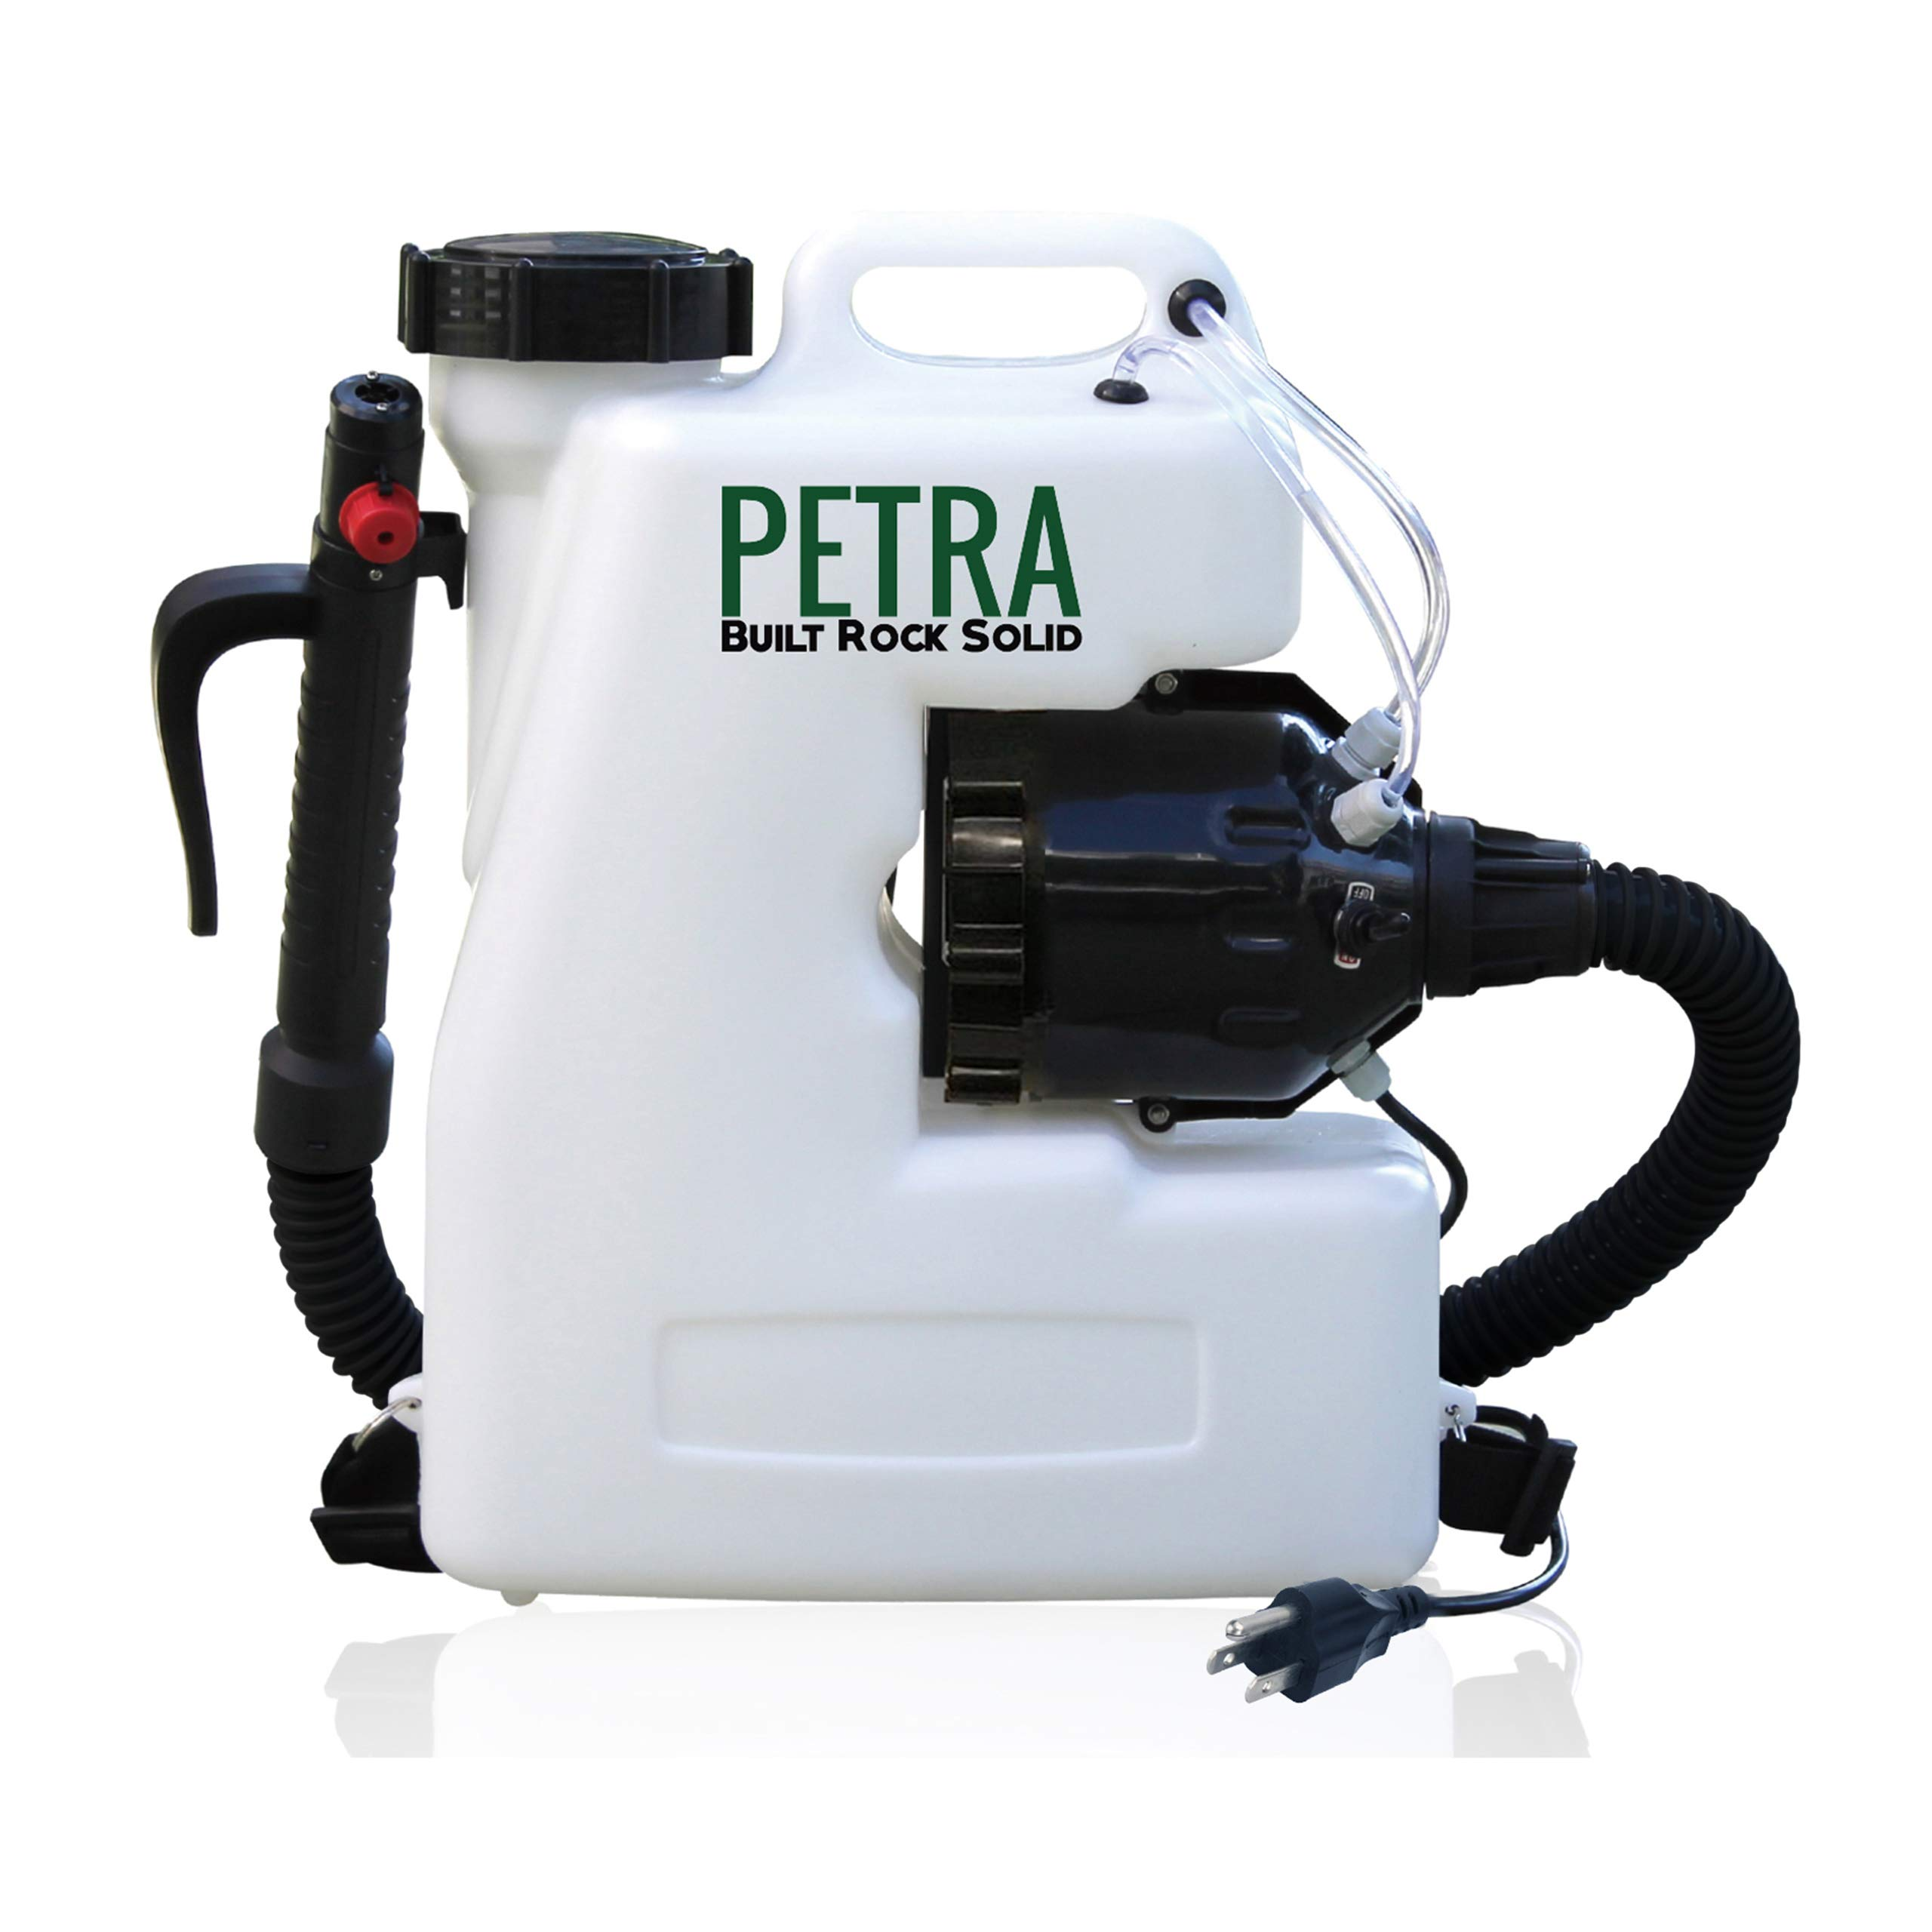 Petra Electric Fogger Atomizer Backpack Sprayer - 4 Gallon Mist Blower with Extended Commercial Hose for Pest Control - Insect, Bug & Mosquito Fogger (Atomizer Fogger) by Petra